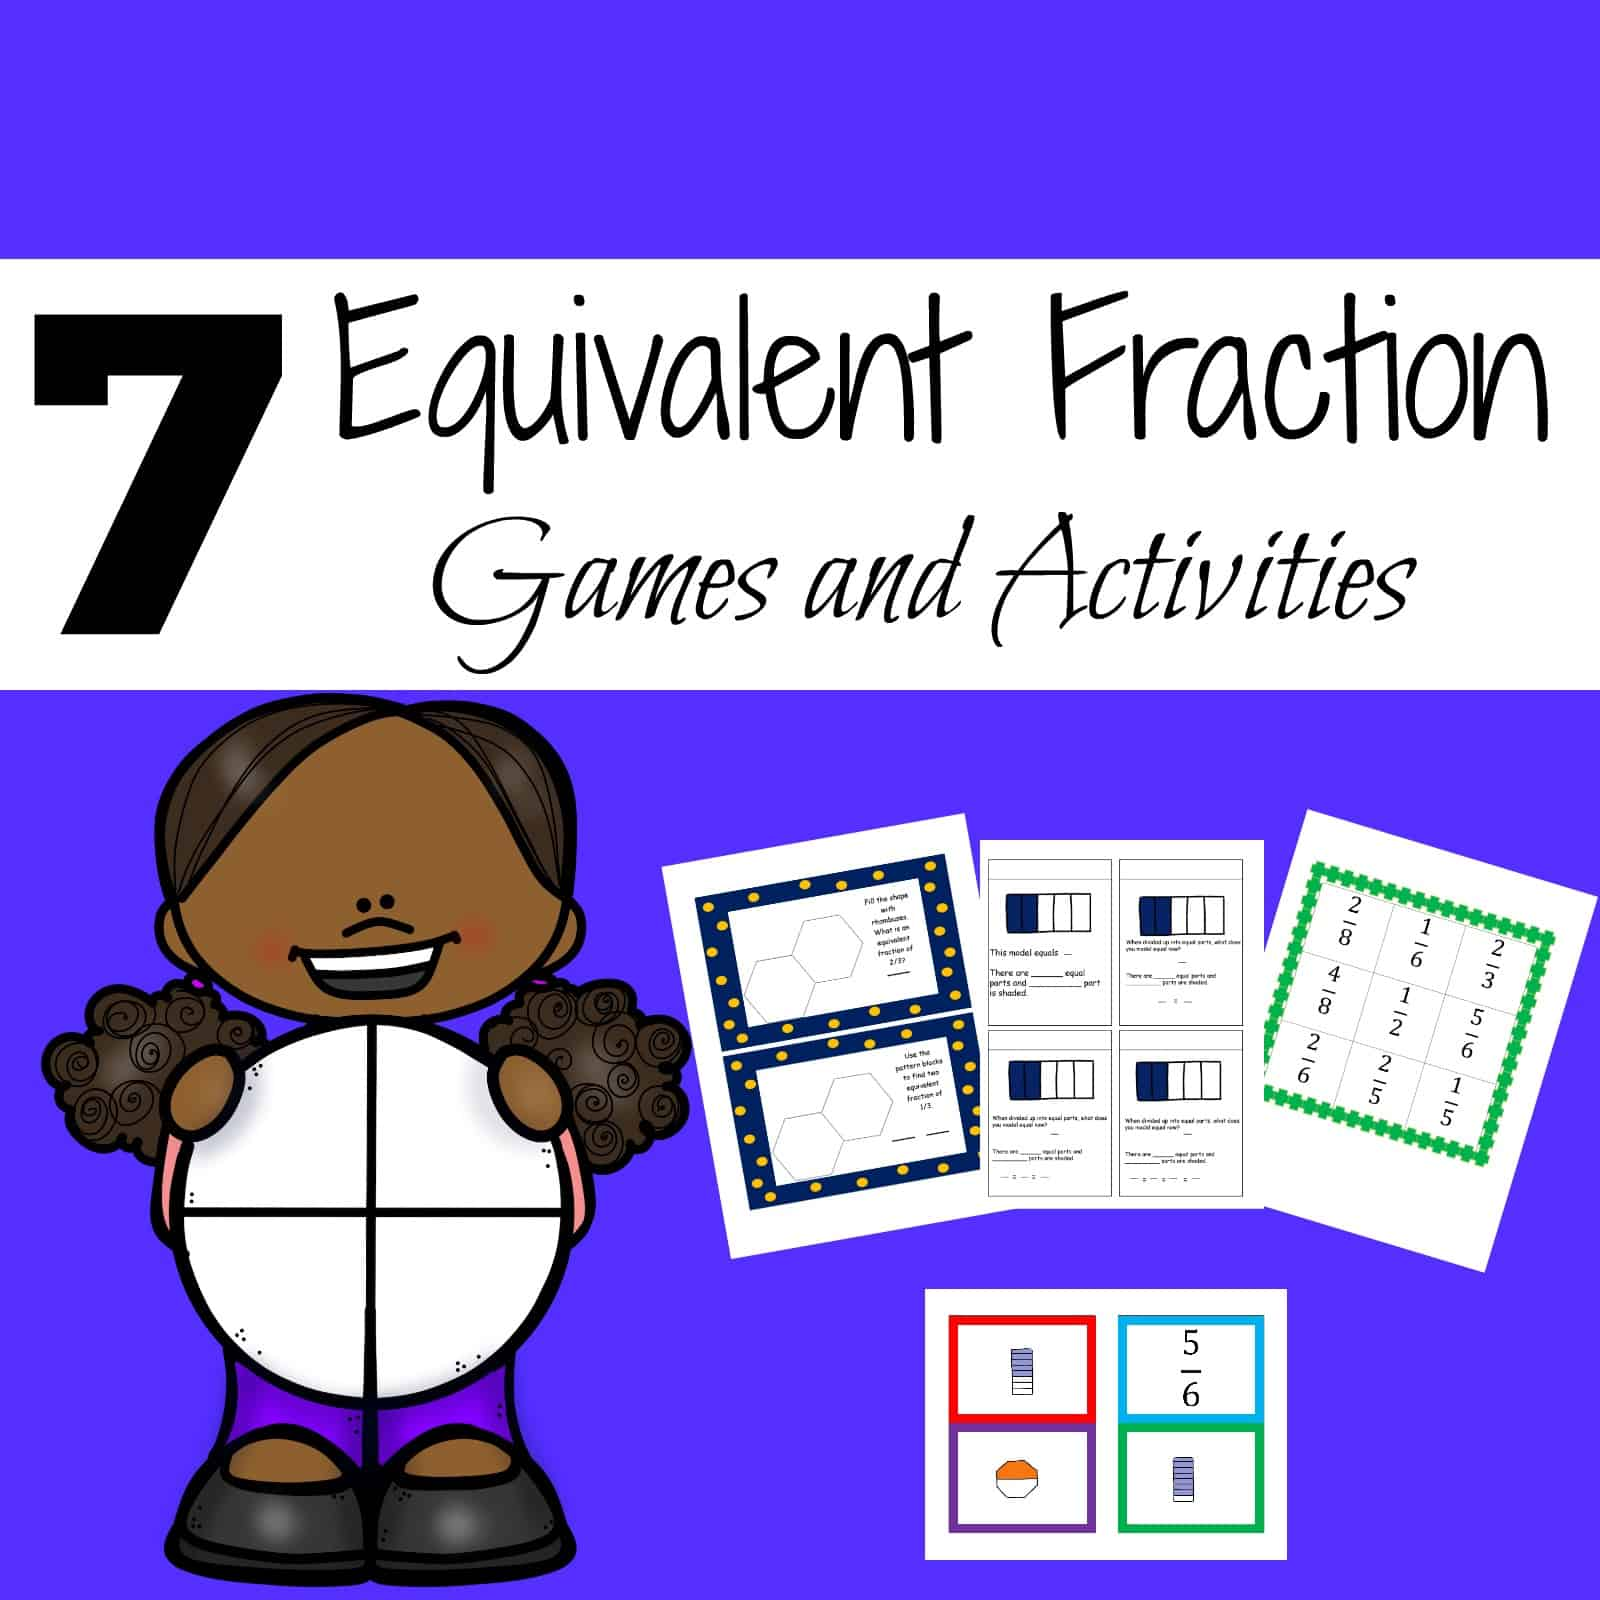 Get 7 Activites And Games Designed To Help You Teach Equivalent Fractions  And Allow Your Students